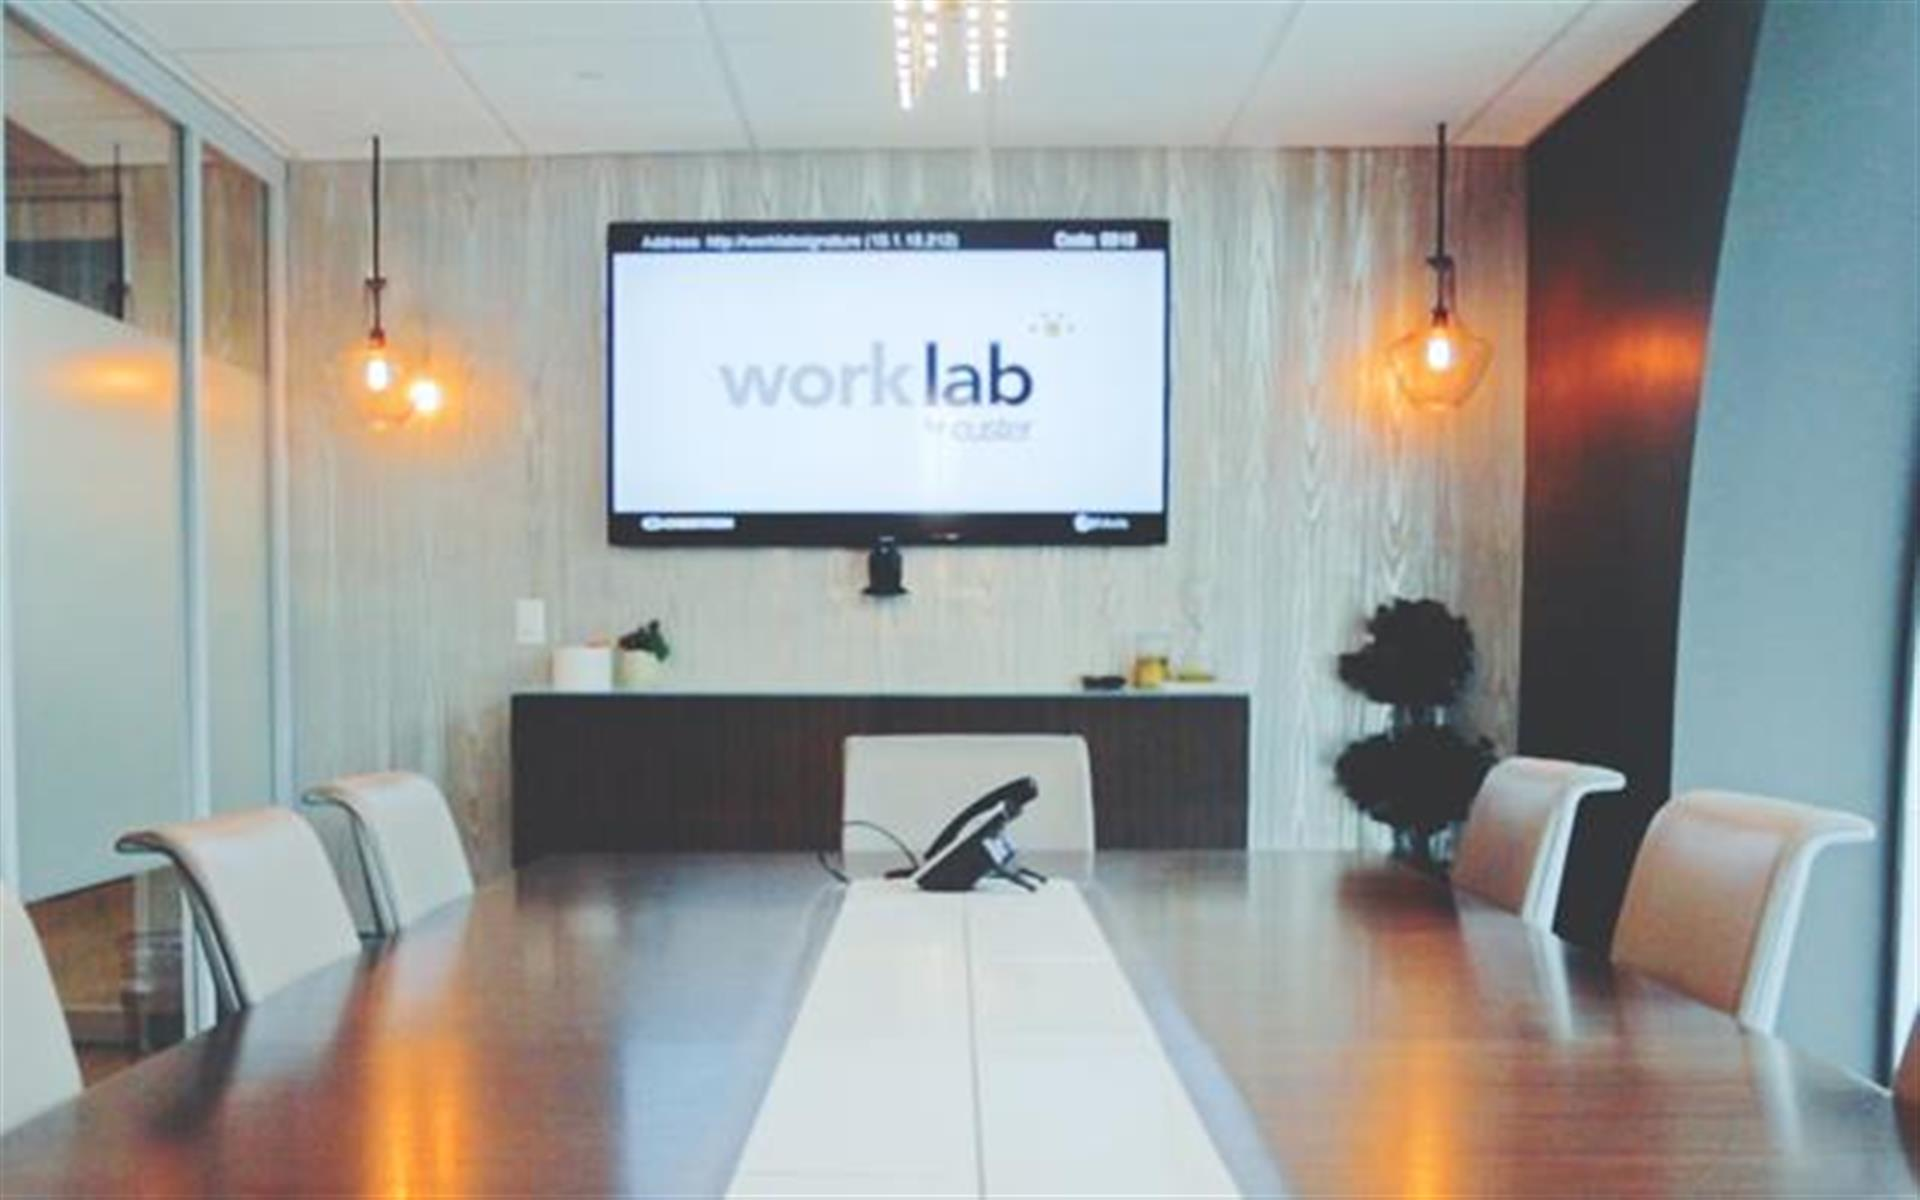 Worklab by Custer - The Signature Room